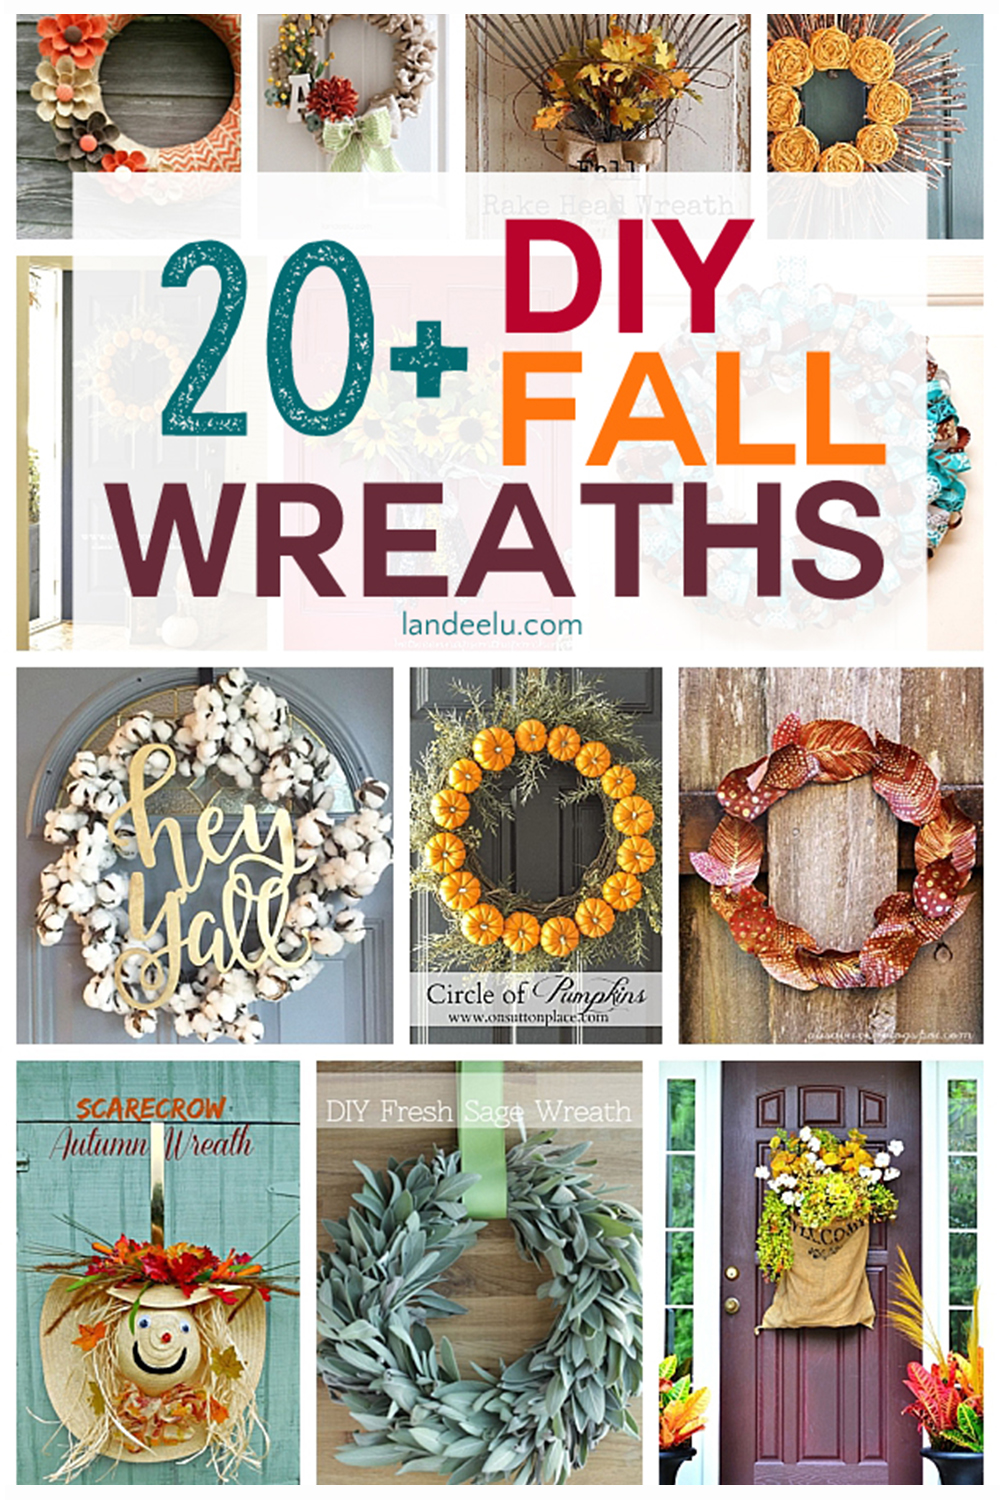 Diy Projects Pretty Diy Fall Wreaths Landeelu Com